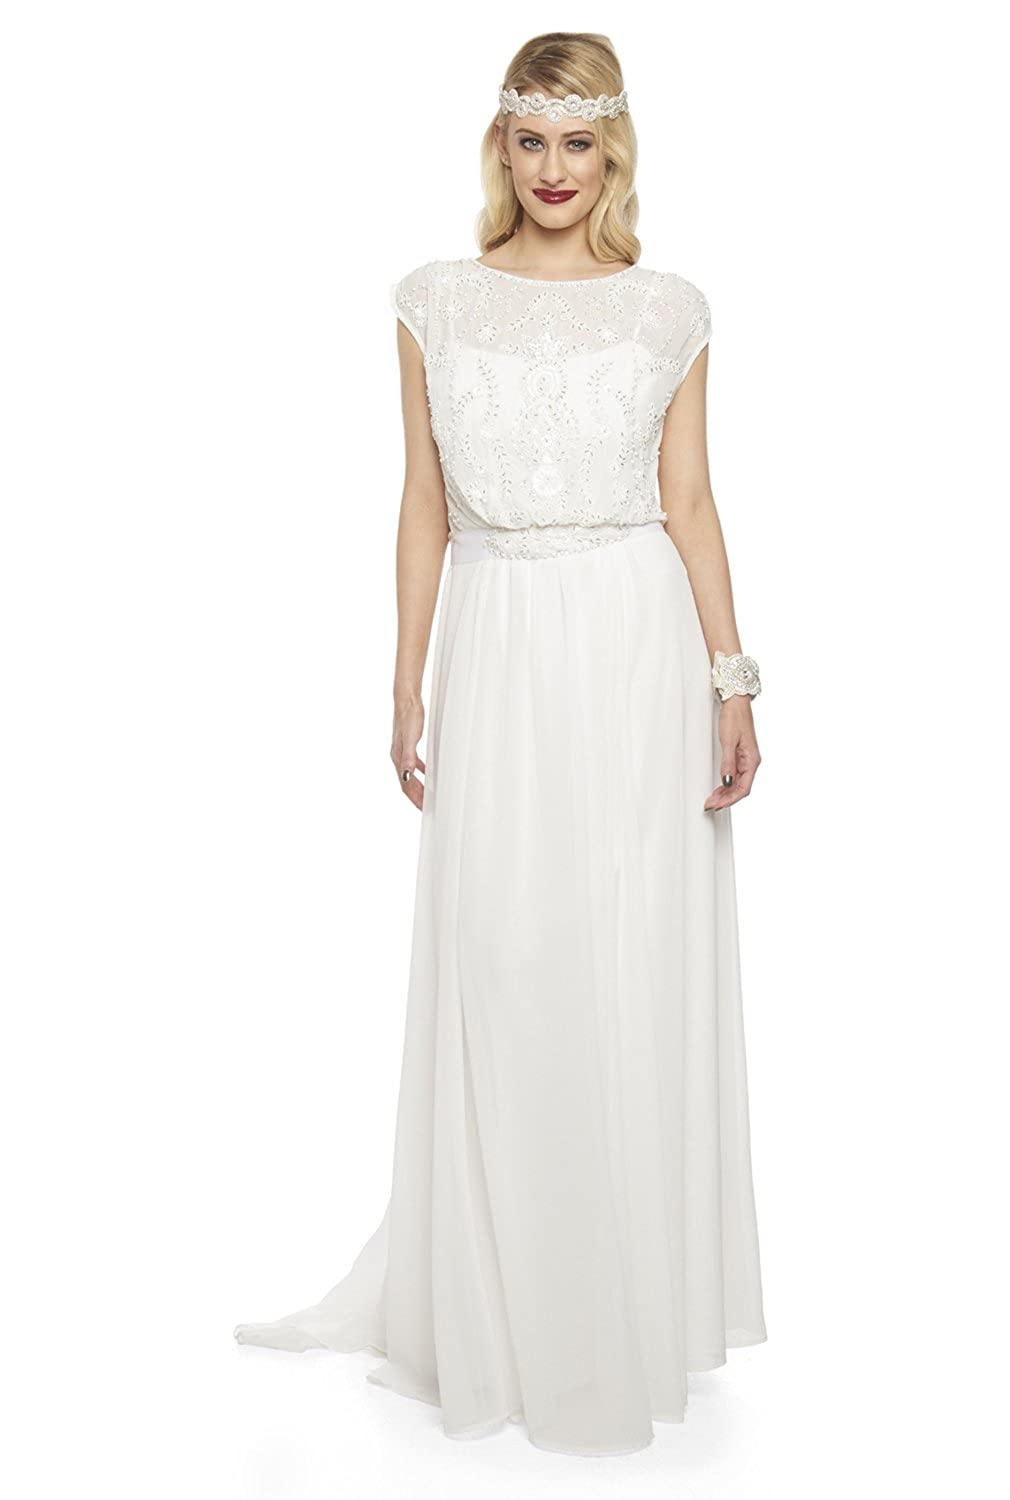 pinklyn Vintage Inspired Prom Maxi Wedding Dress in Off White